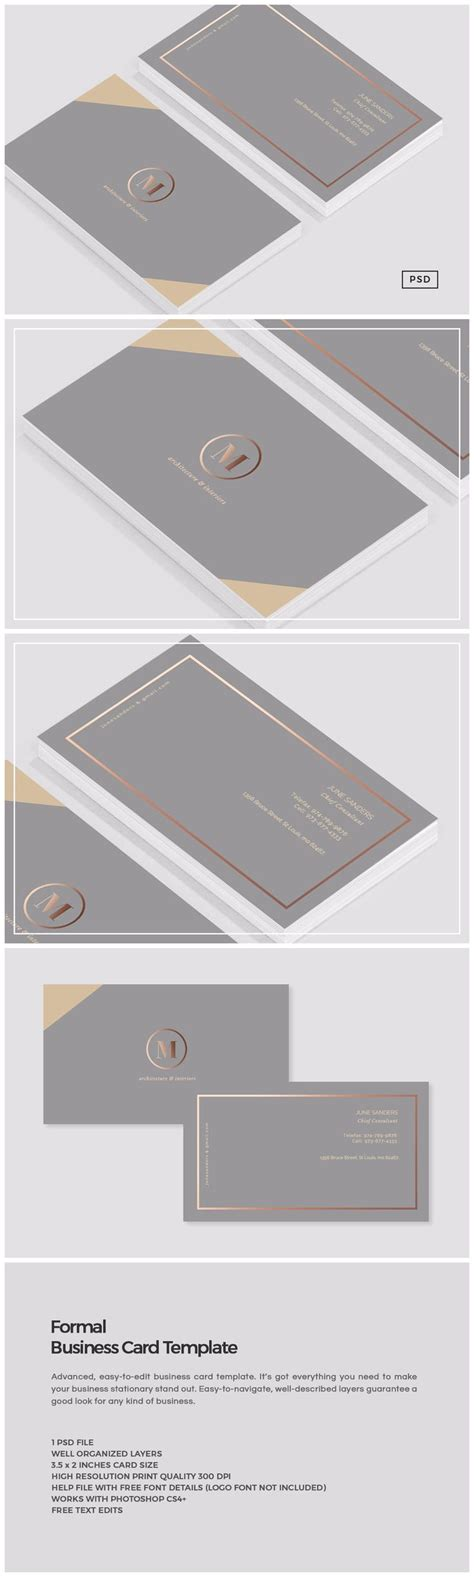 Ccf Card Template by 17 Best Images About Business Card Templates On